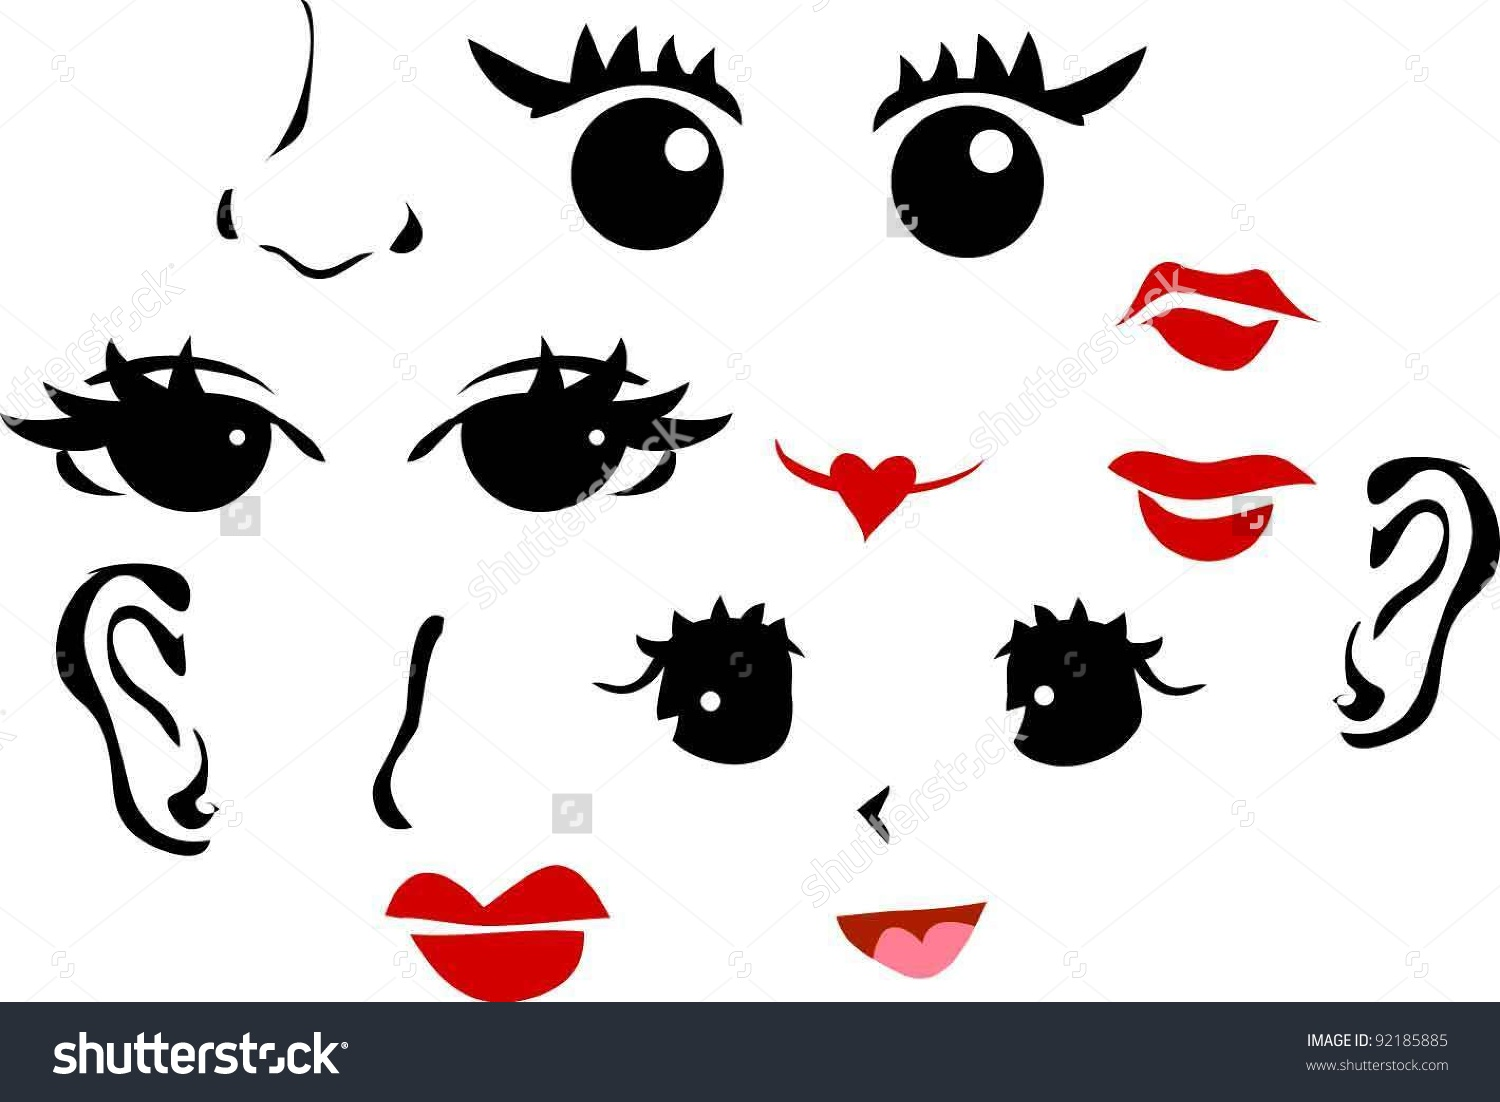 Face 3 Eyes 1 Ears 3 Stock Vector 92185885.